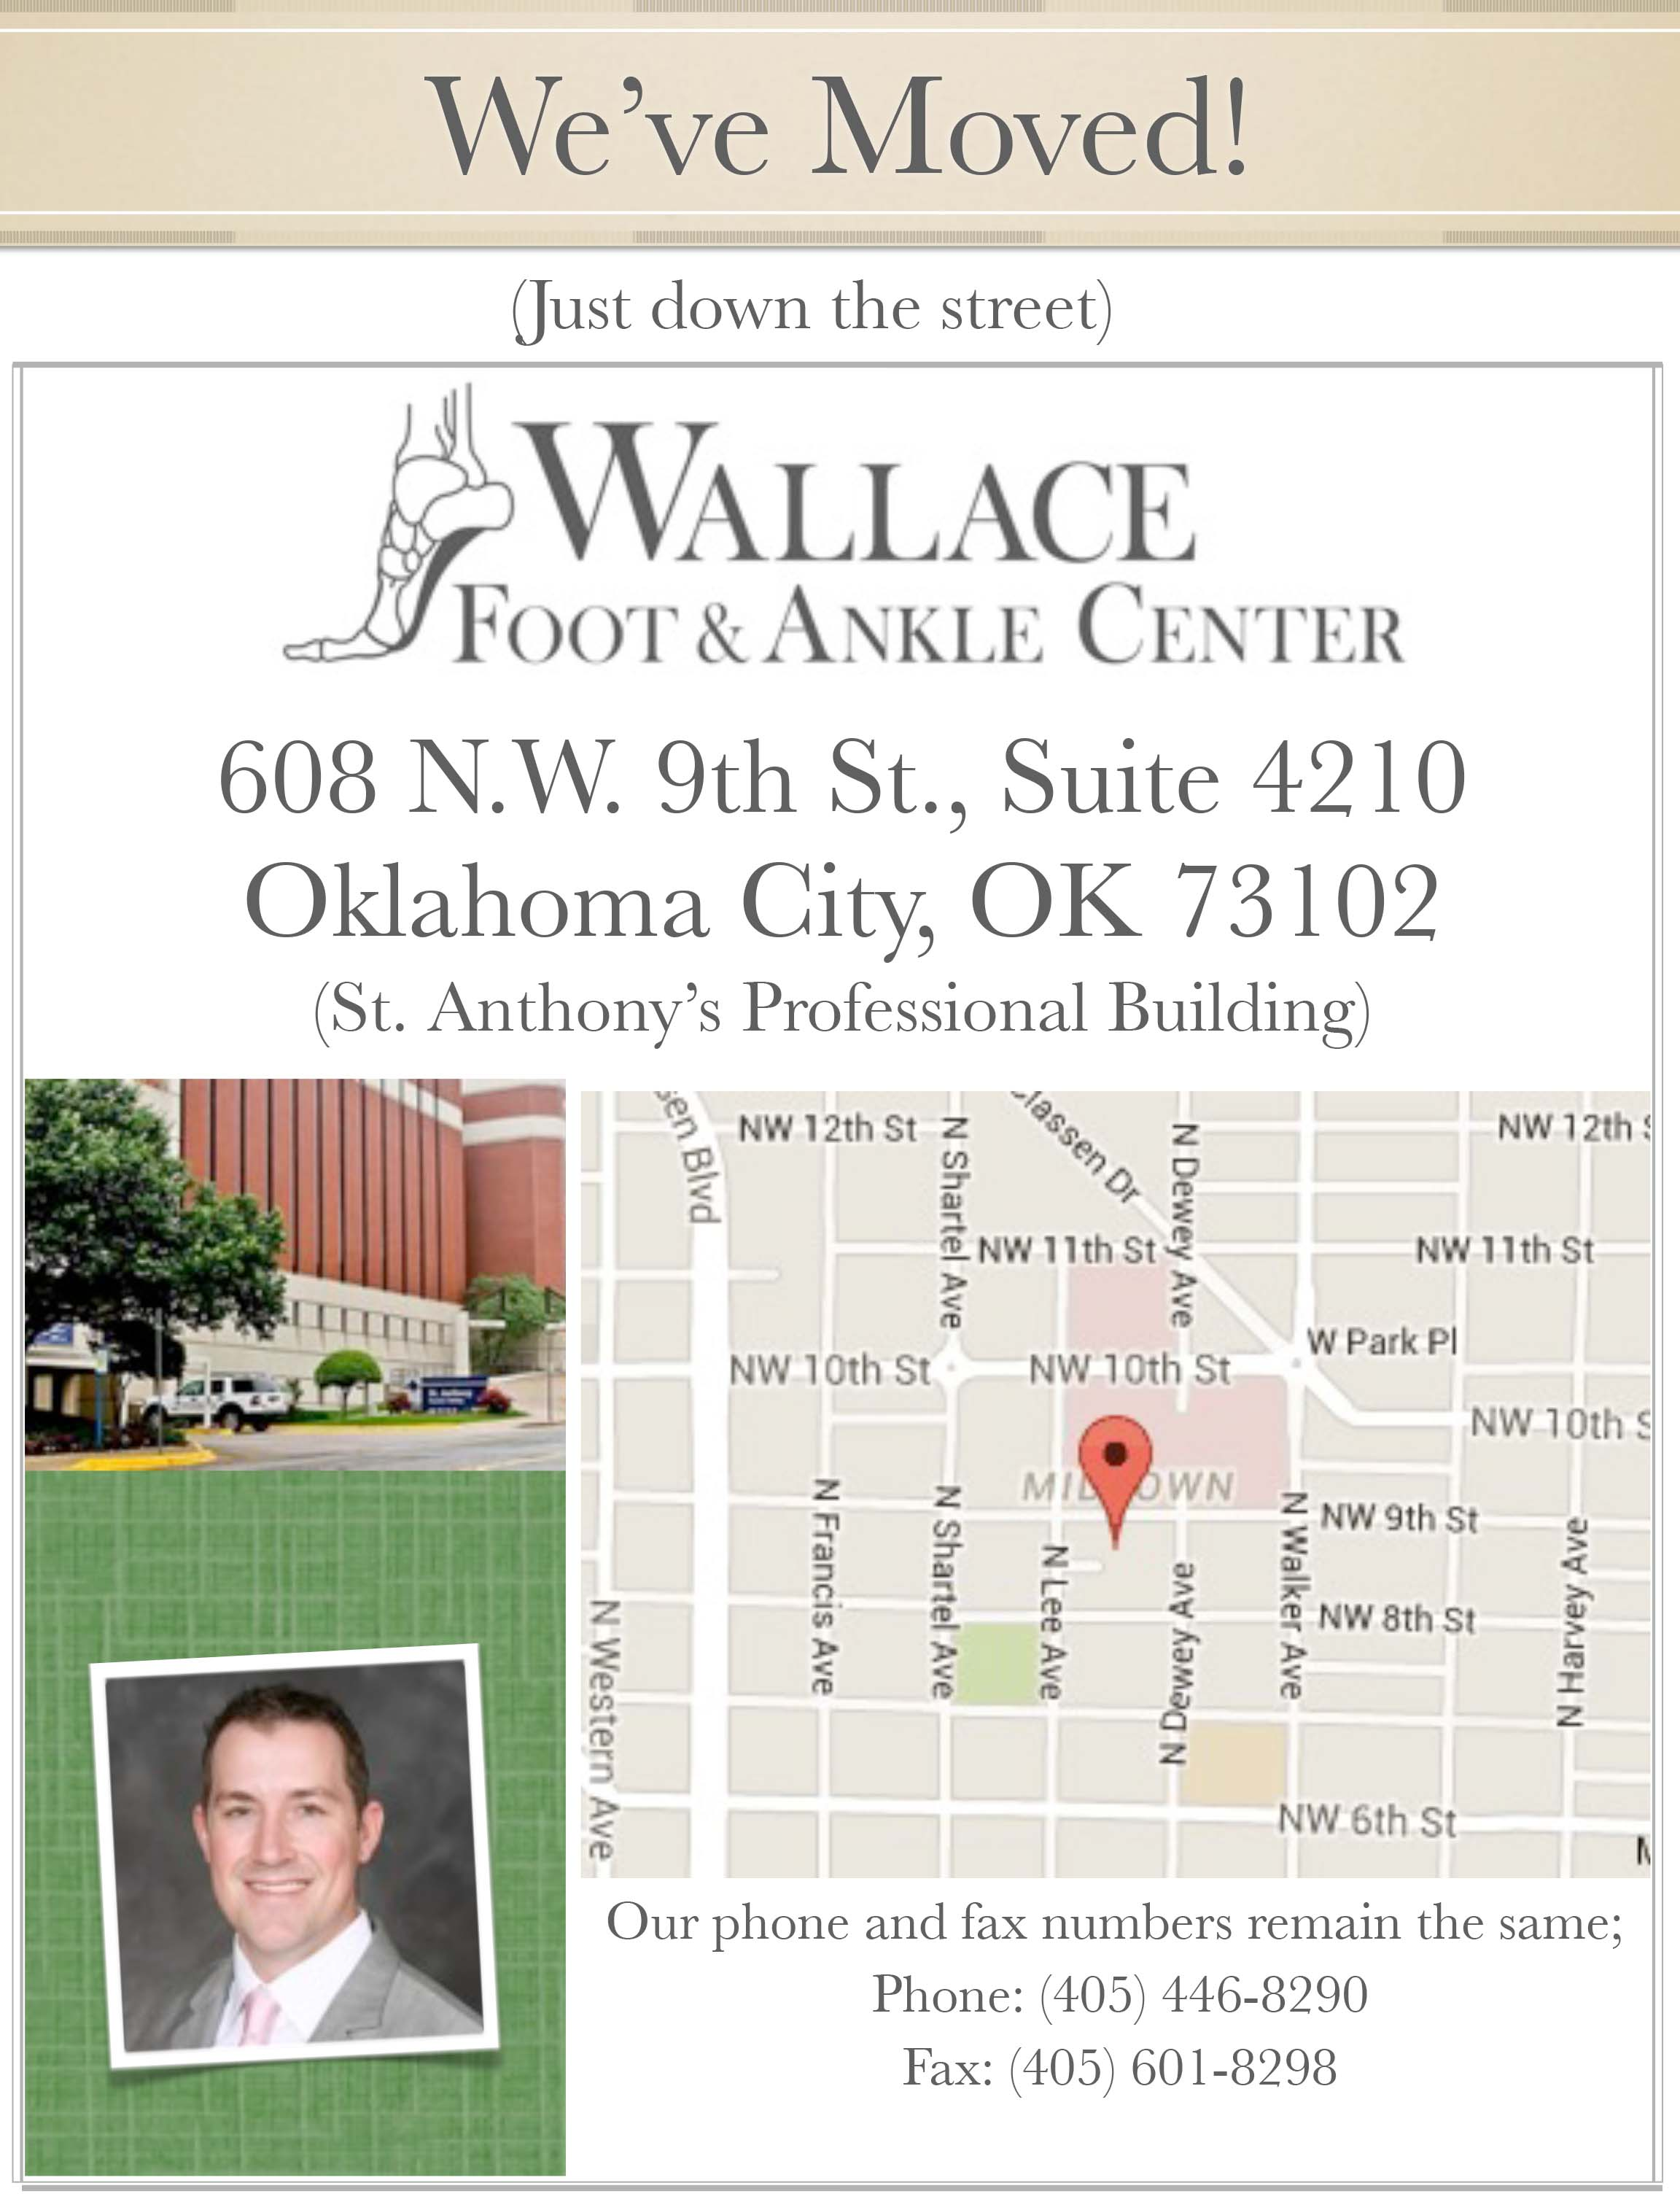 Wallace Foot & Ankle Center